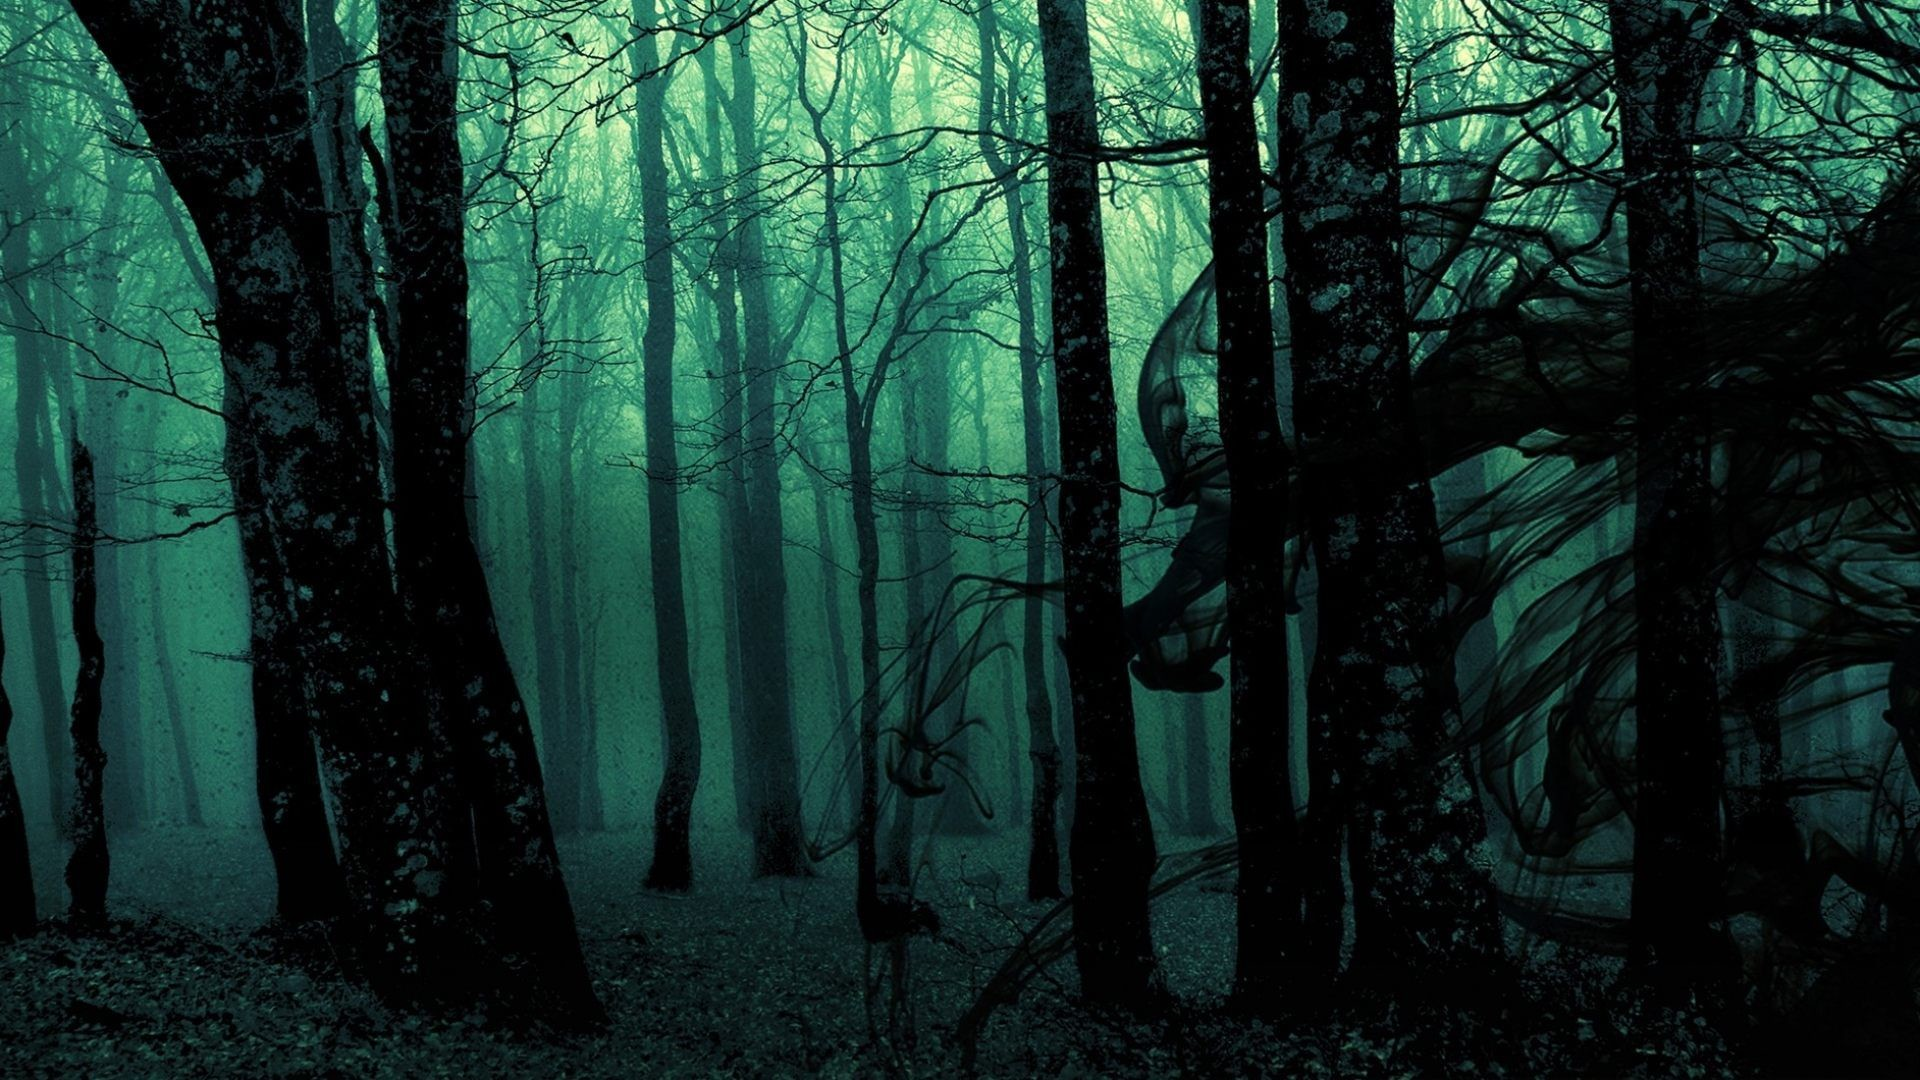 Res: 1920x1080, Explore Forest Wallpaper, Hd Wallpaper, and more!